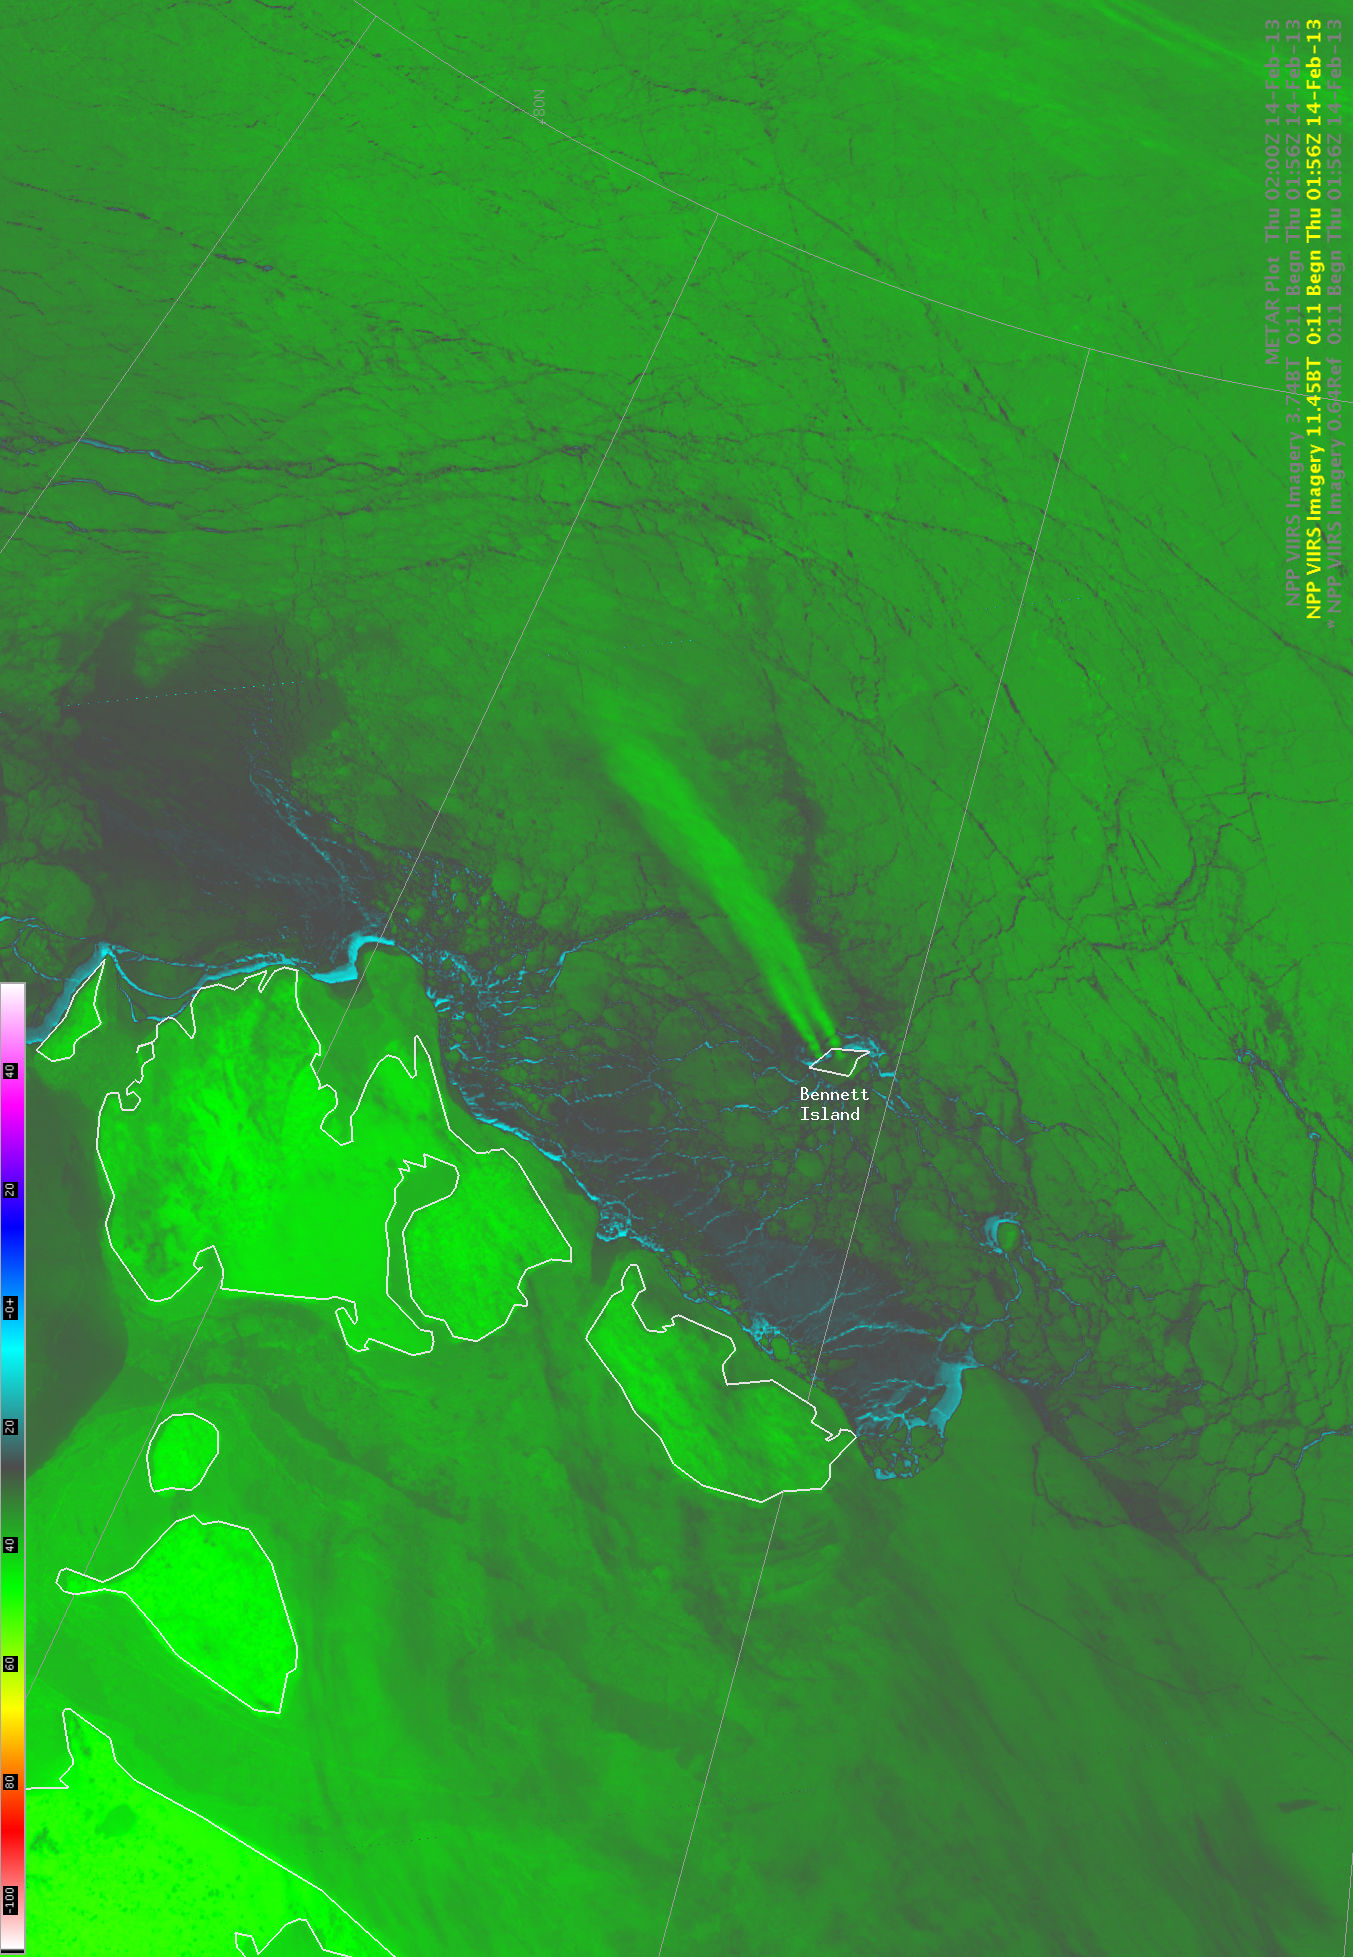 Suomi NPP VIIRS 11.45 µm IR channel images (click image to play animation)